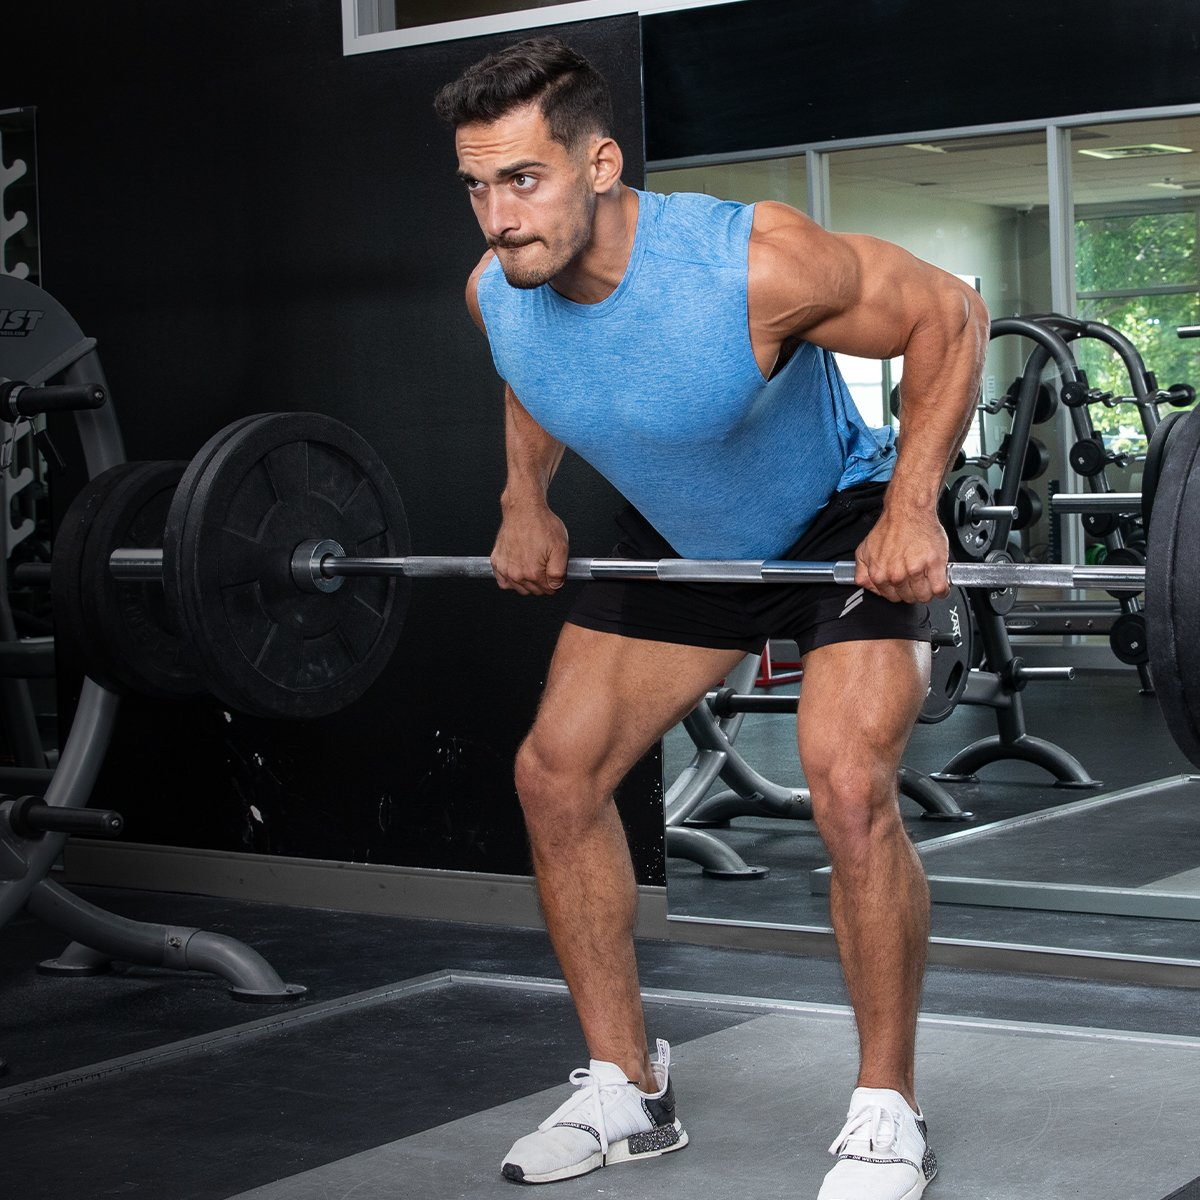 5x5 For Muscle and Strength: The Program